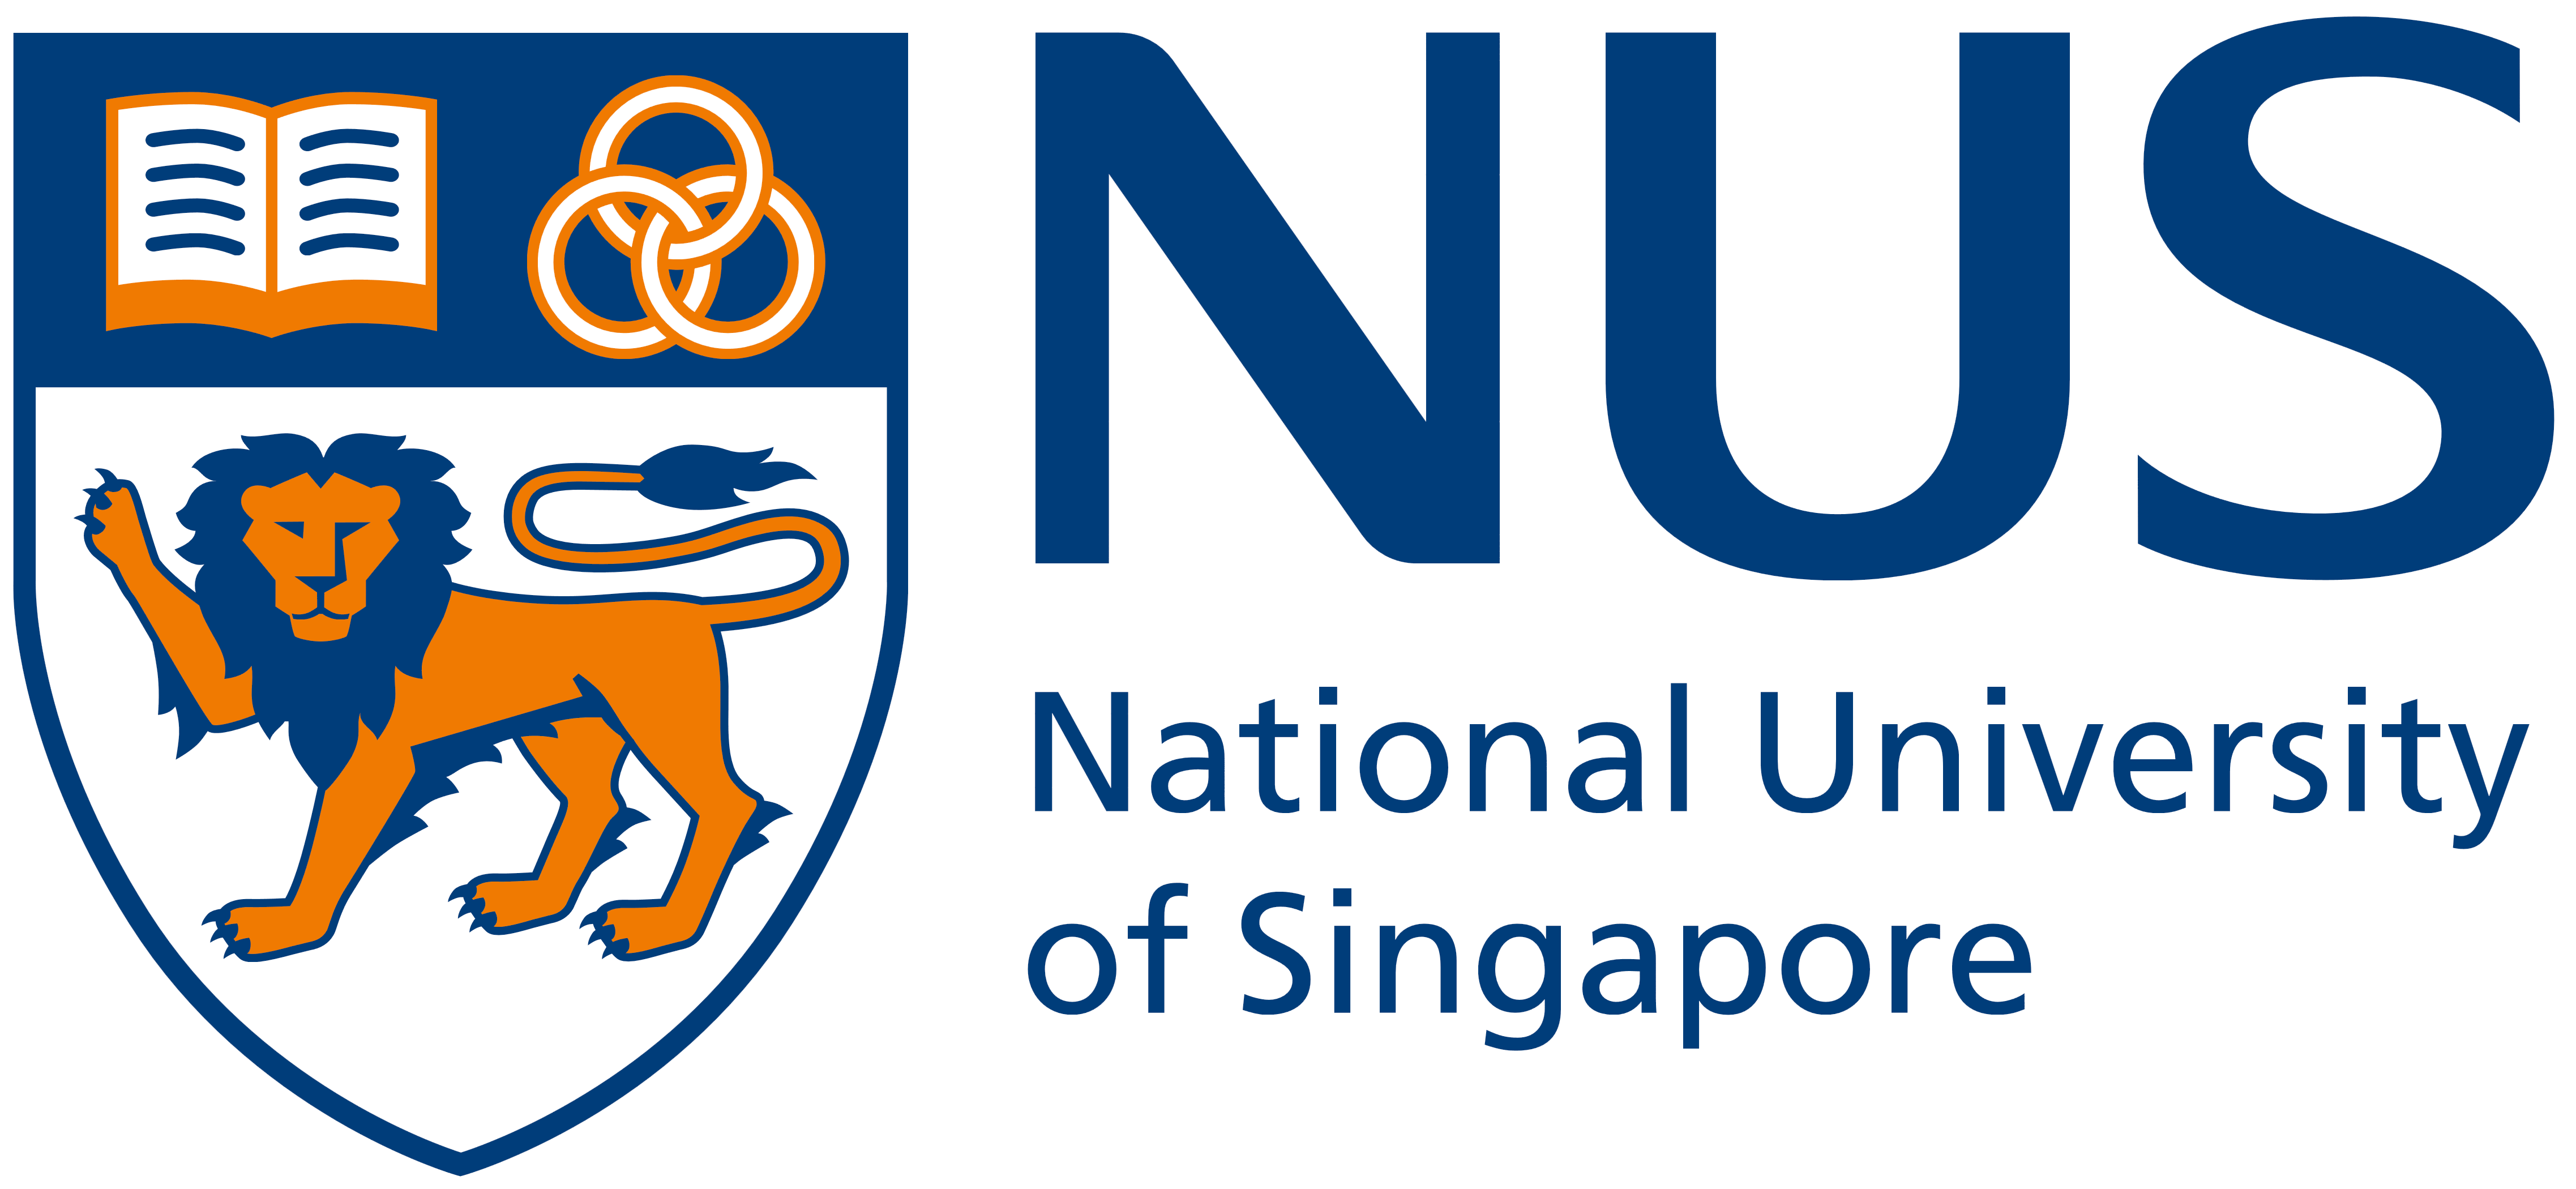 National University of Singapore - Architecture Schools in the World